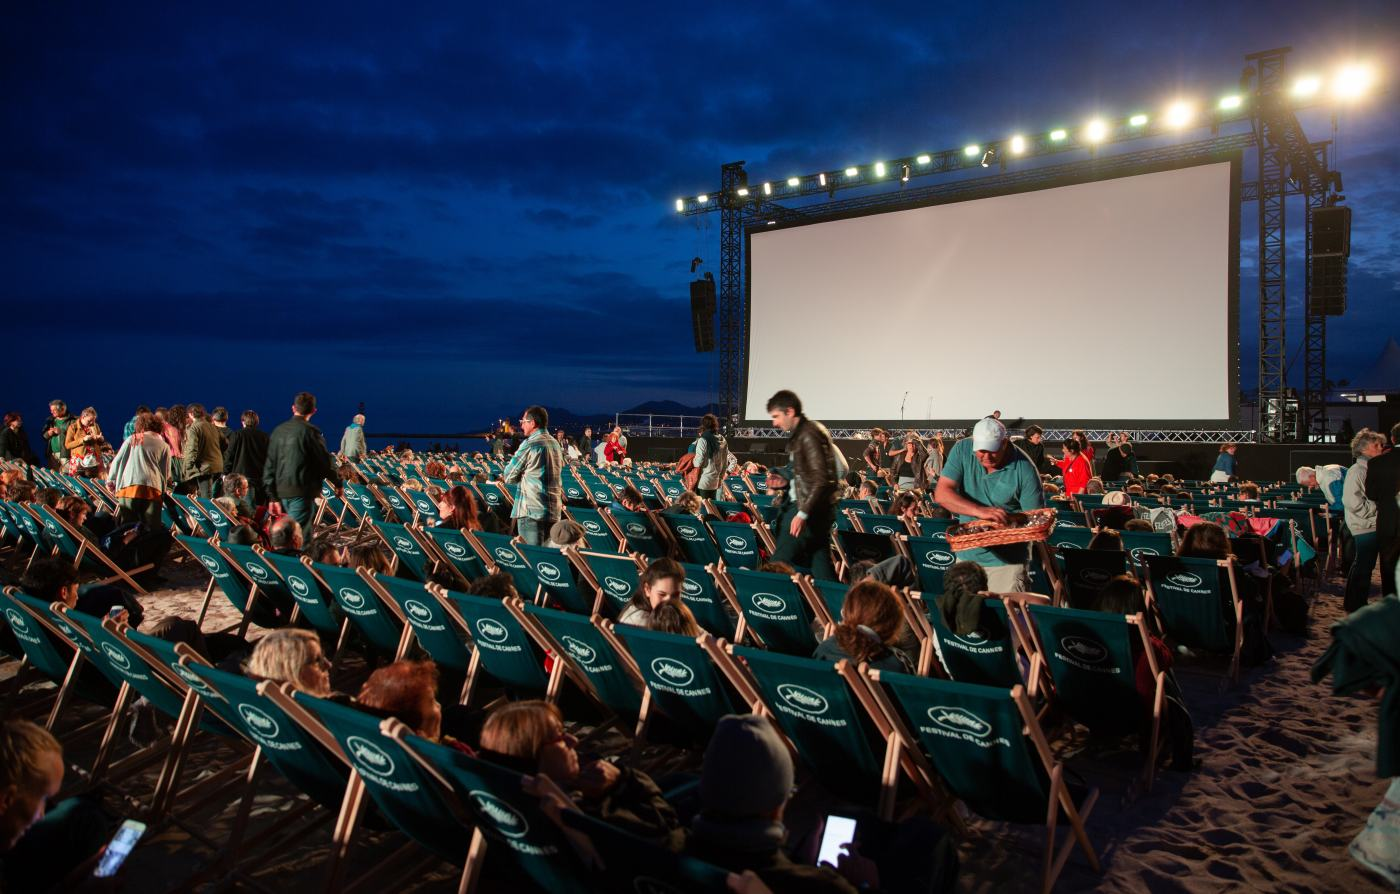 New York Outdoor Movies - Free Movies in NYC All Summer